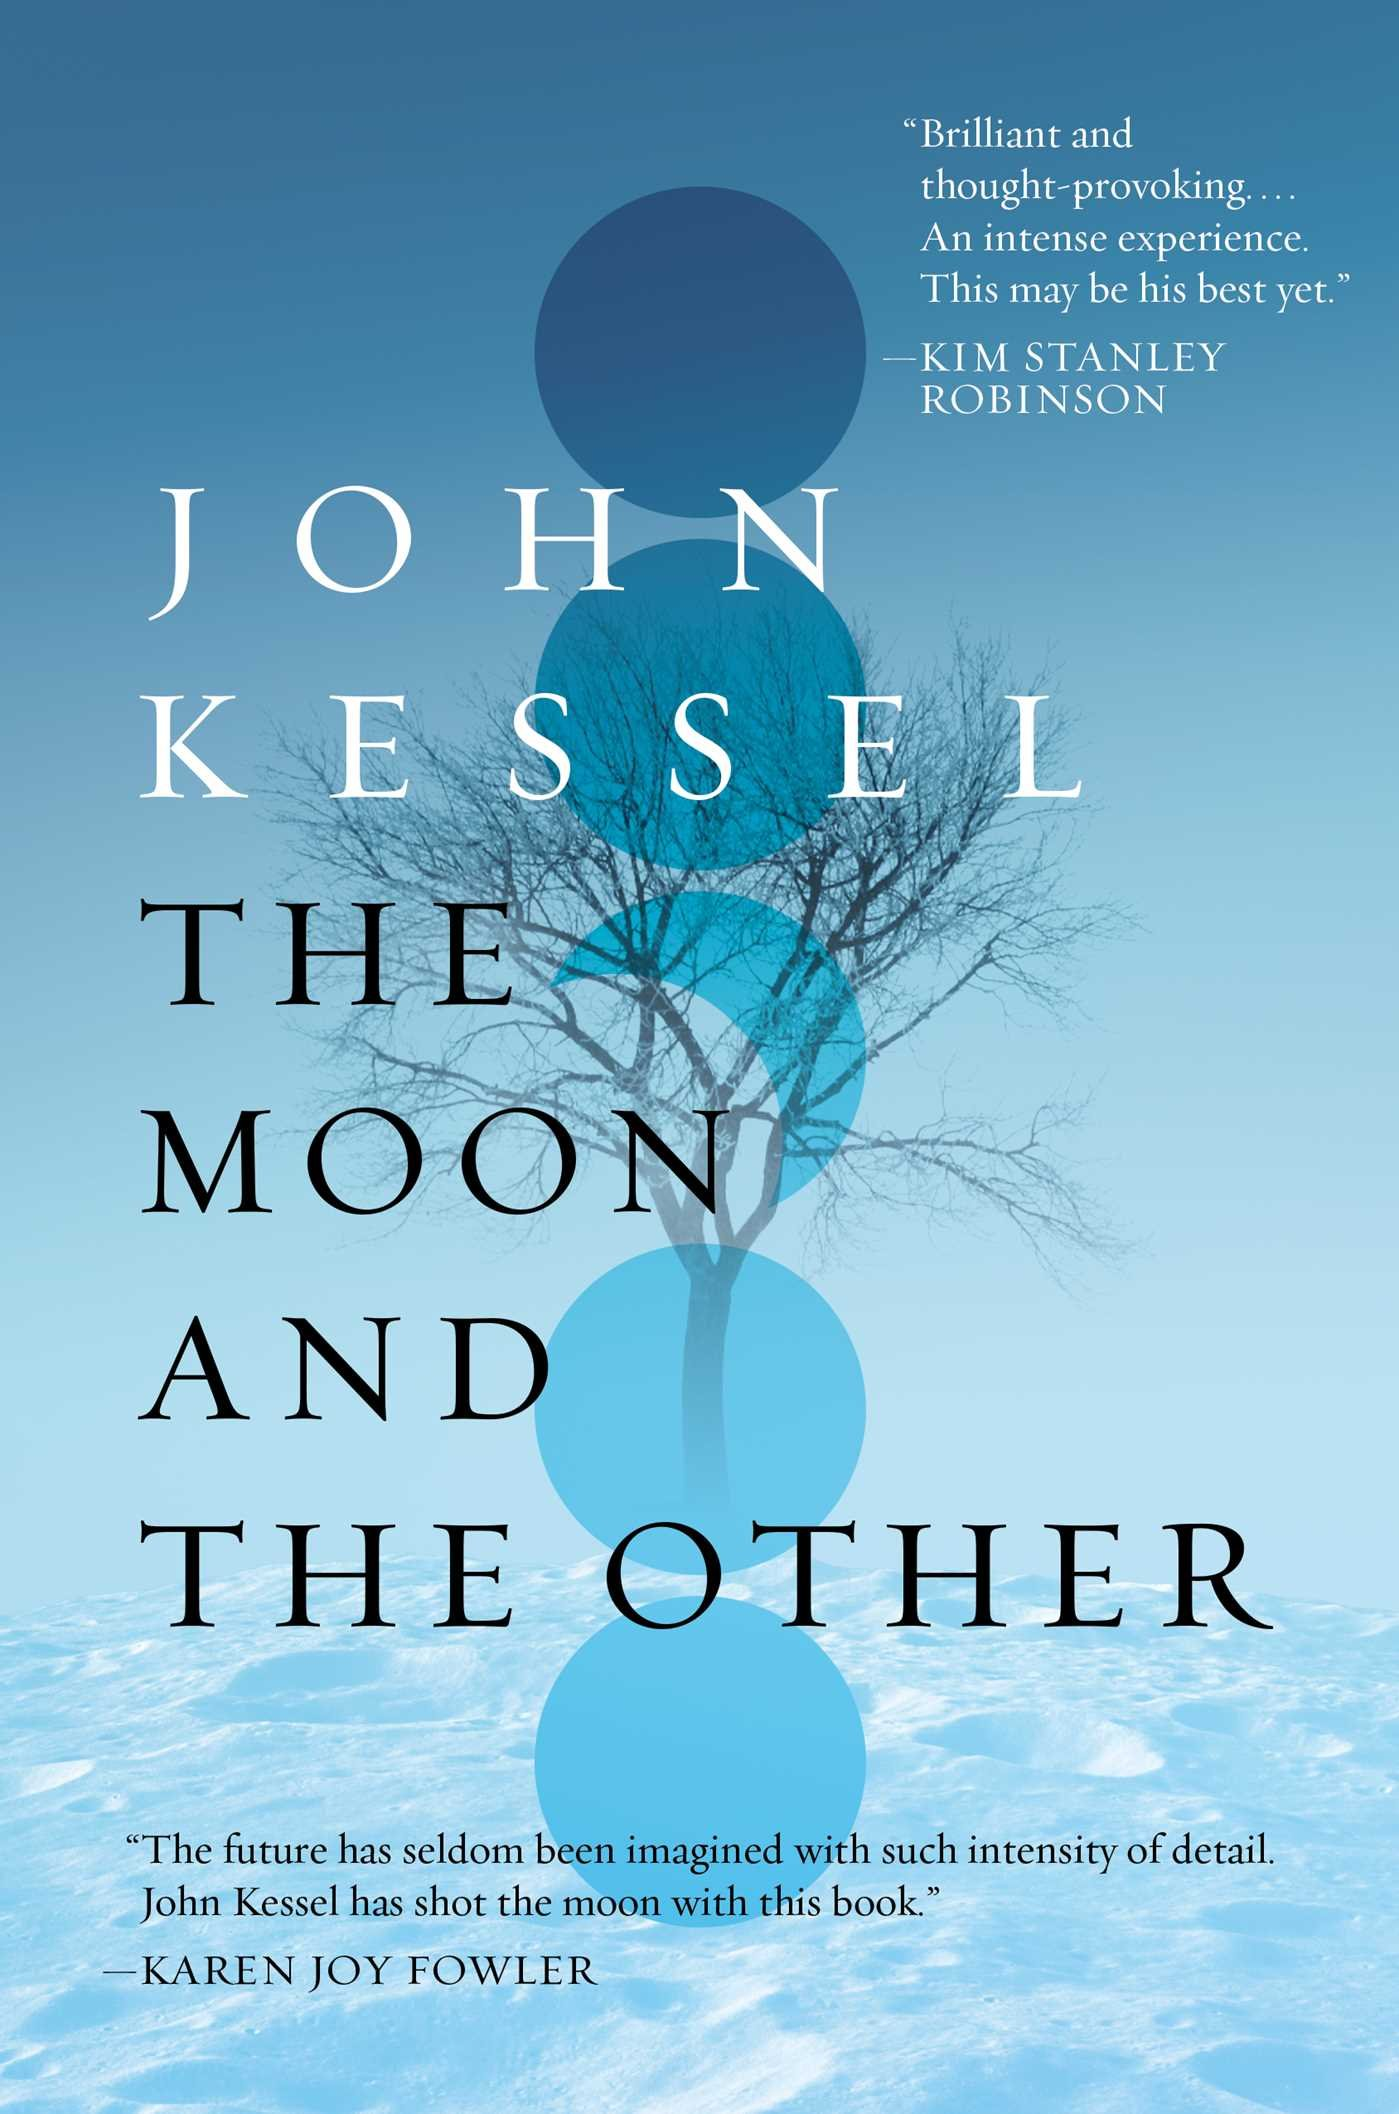 The Moon and the Other: John Kessel: 9781481481441: Amazon.com: Books